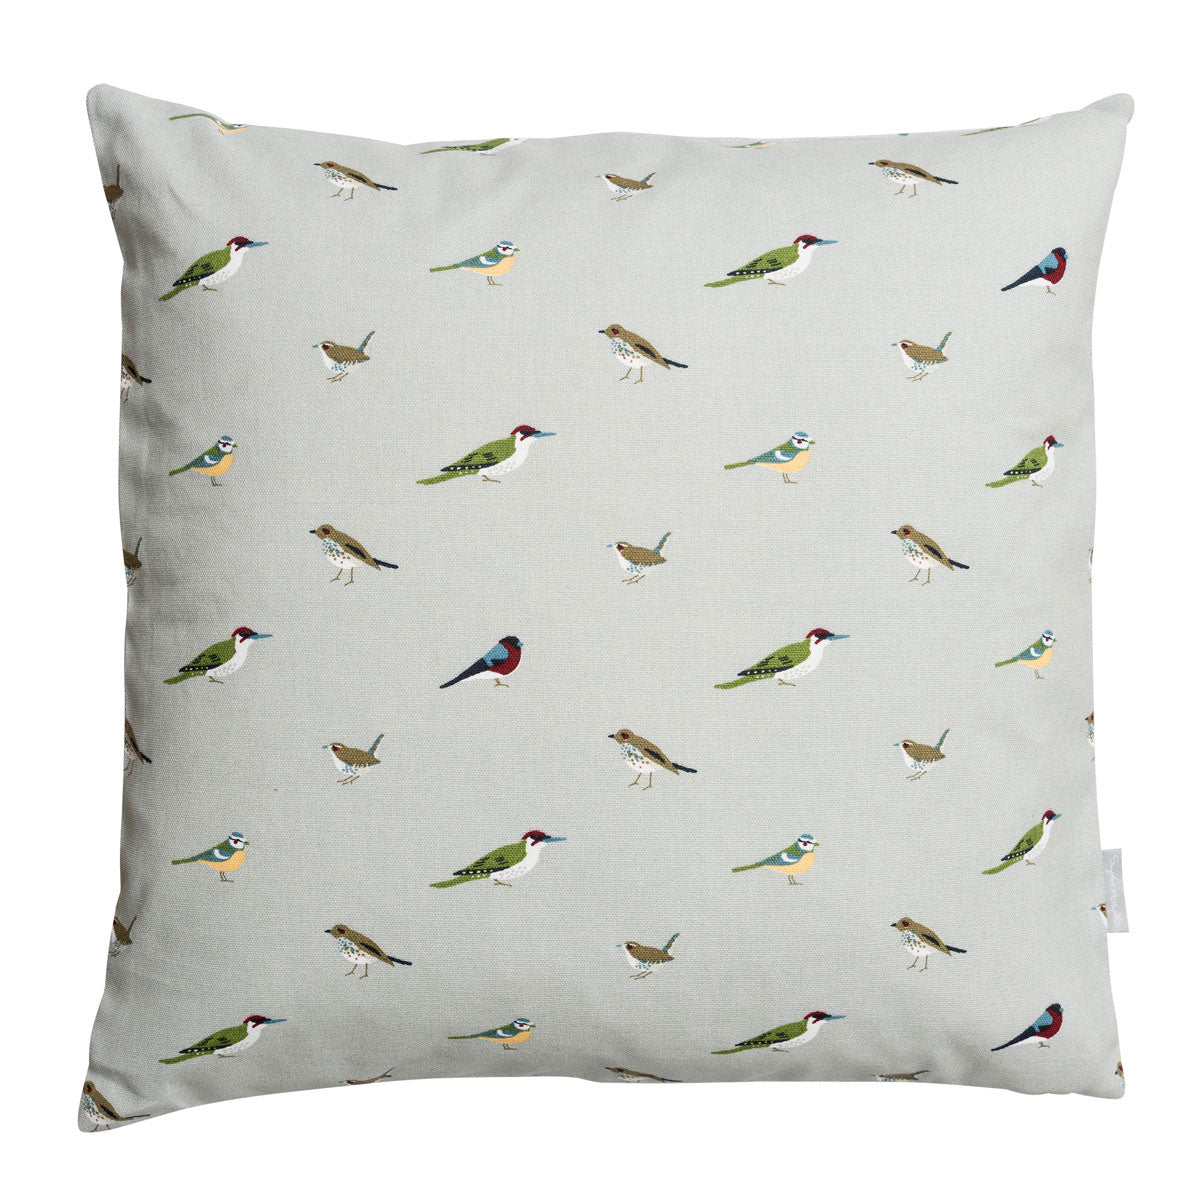 Garden Birds Cushion - 45cm x 45cm